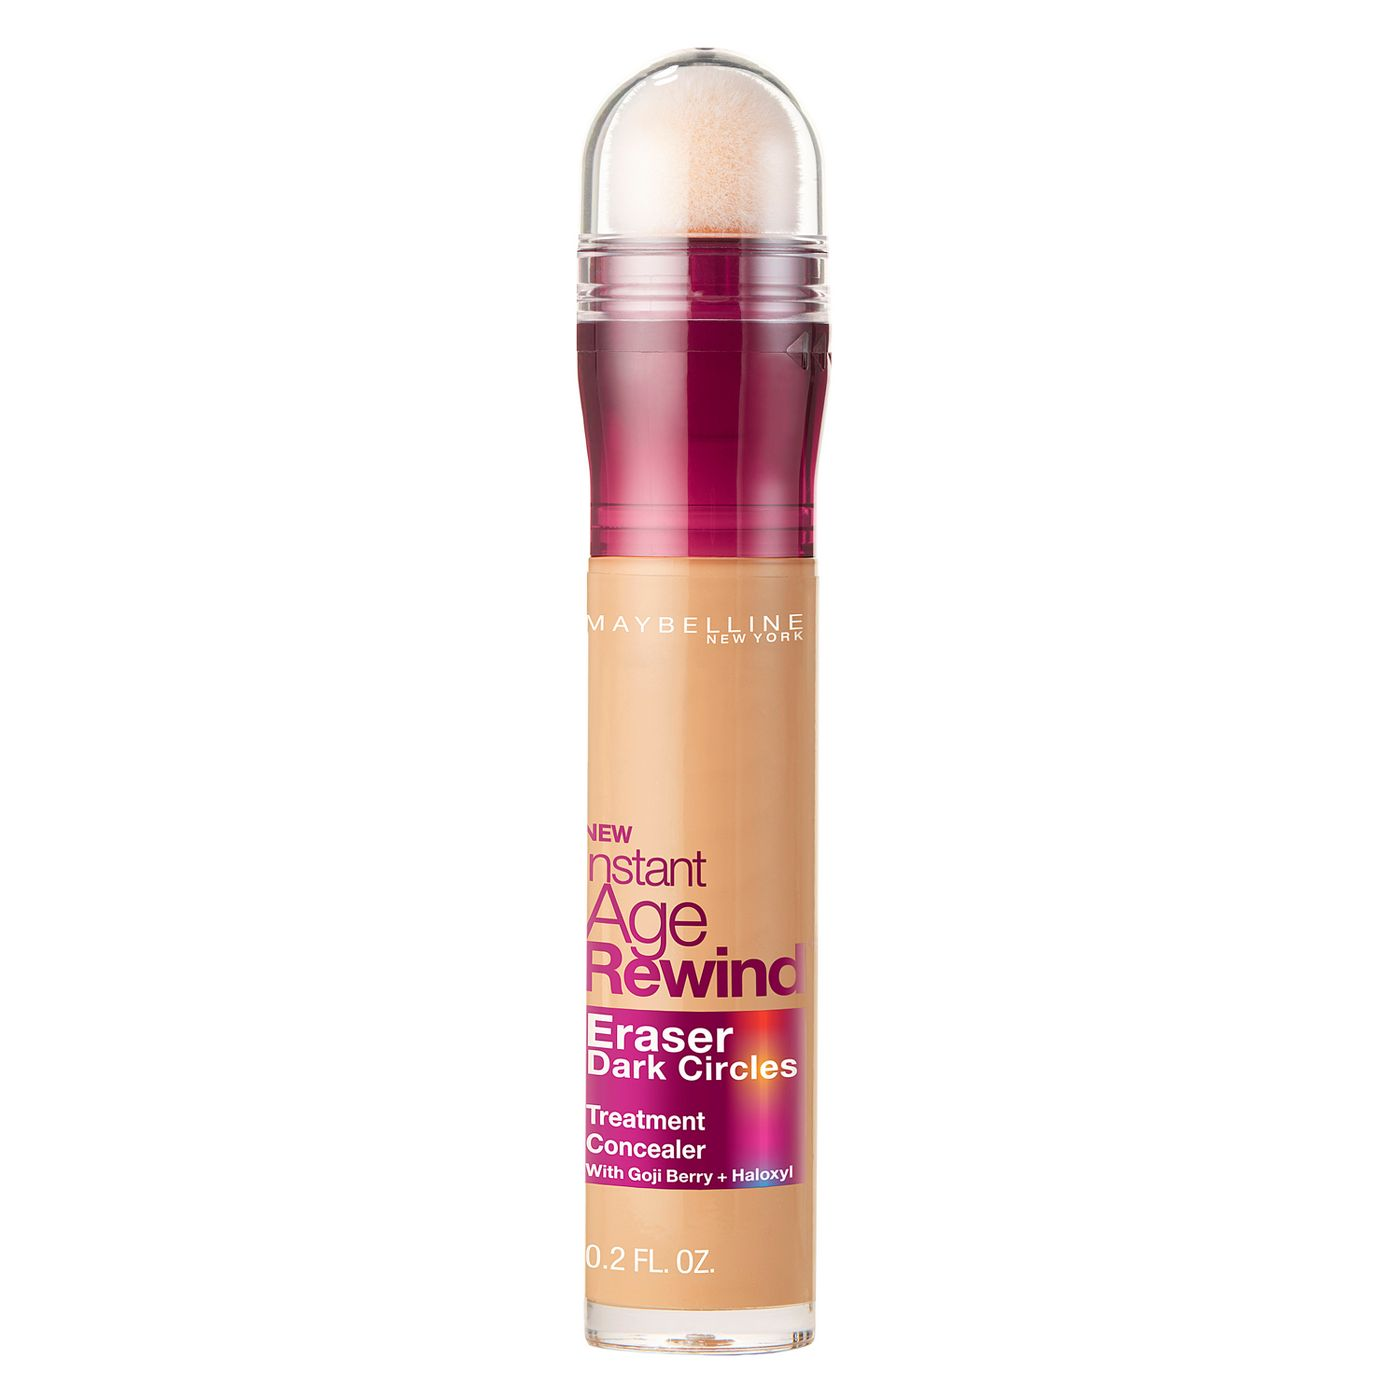 Maybelline instant age rewind is an amazing budget friendly concealer.